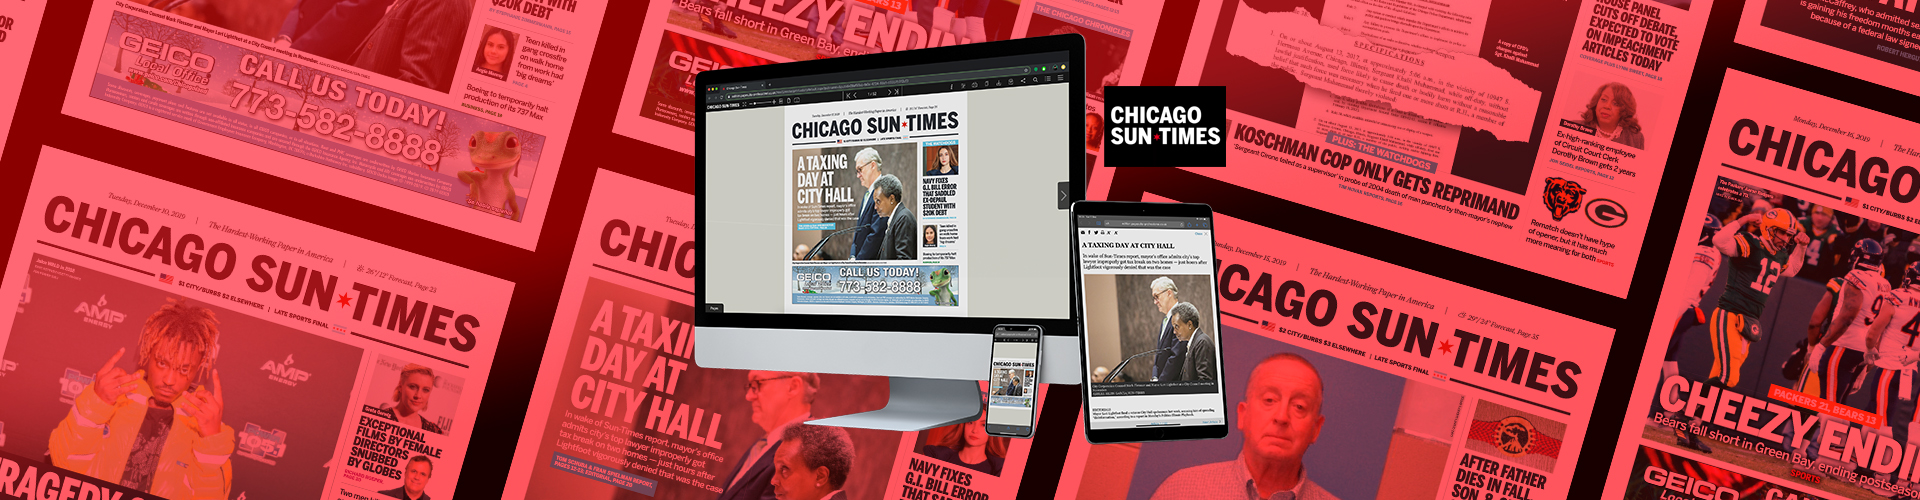 Press Release: Chicago Sun-Times Launches New Replica Solution with PageSuite